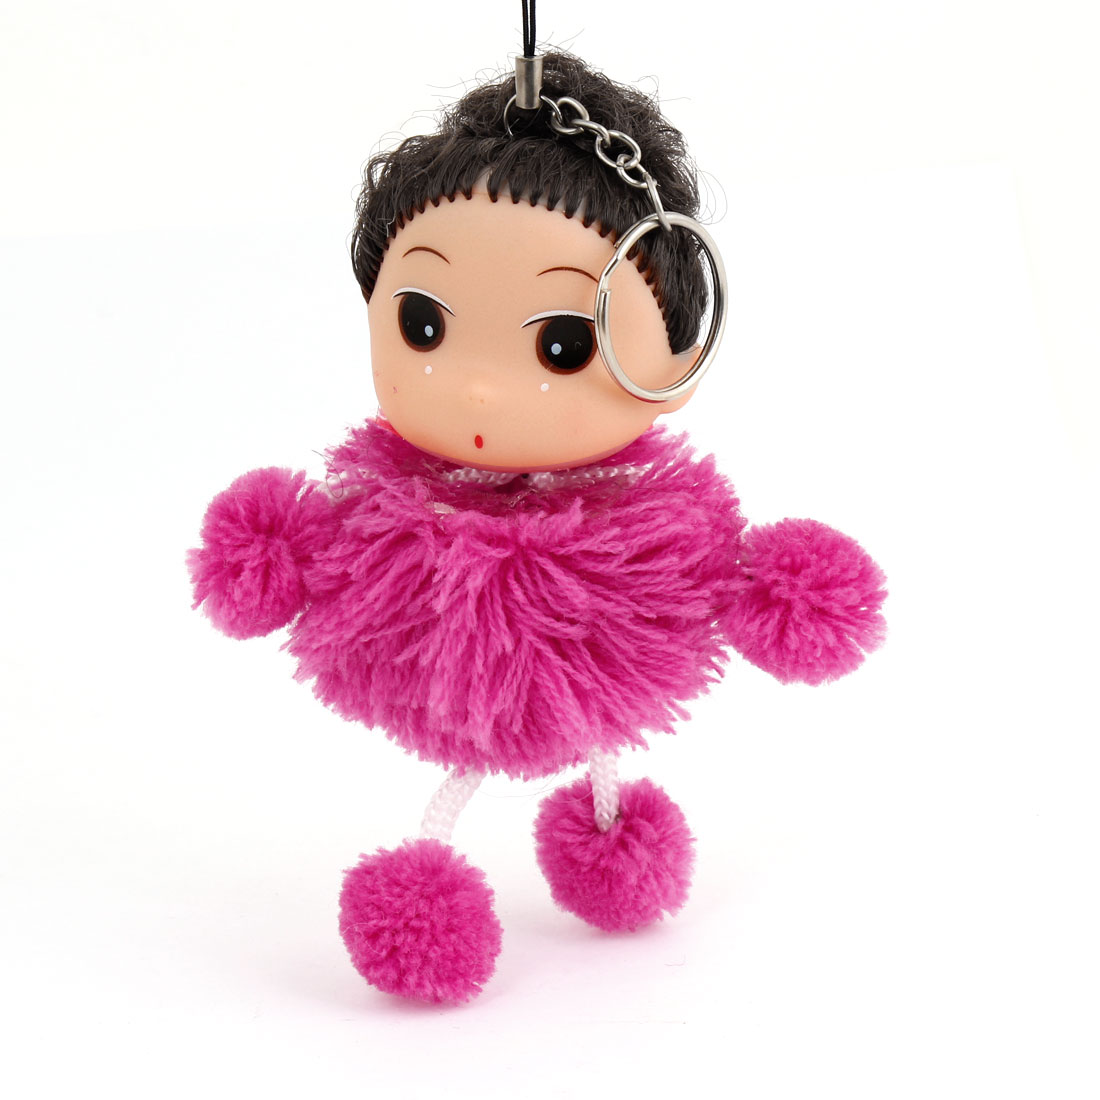 Dark Brown Hair Pom Pom Doll Pendant Fuchsia Strap Key Ring for Smart Phone